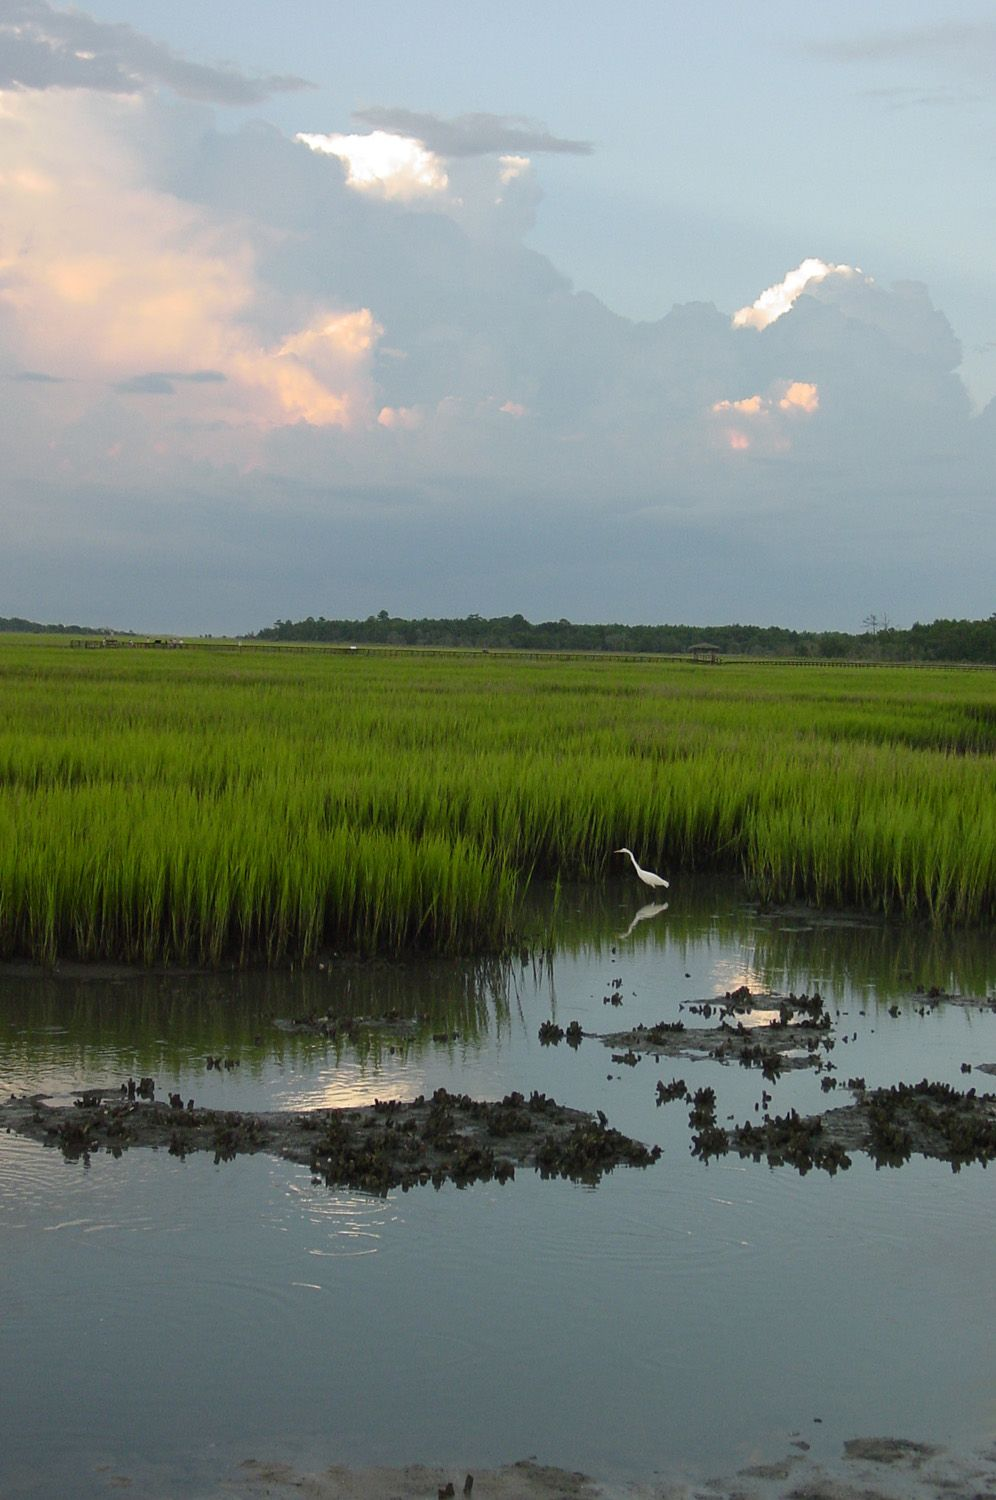 Quot Low Country Marsh Scene Quot Was Taken In A Favorite Place To